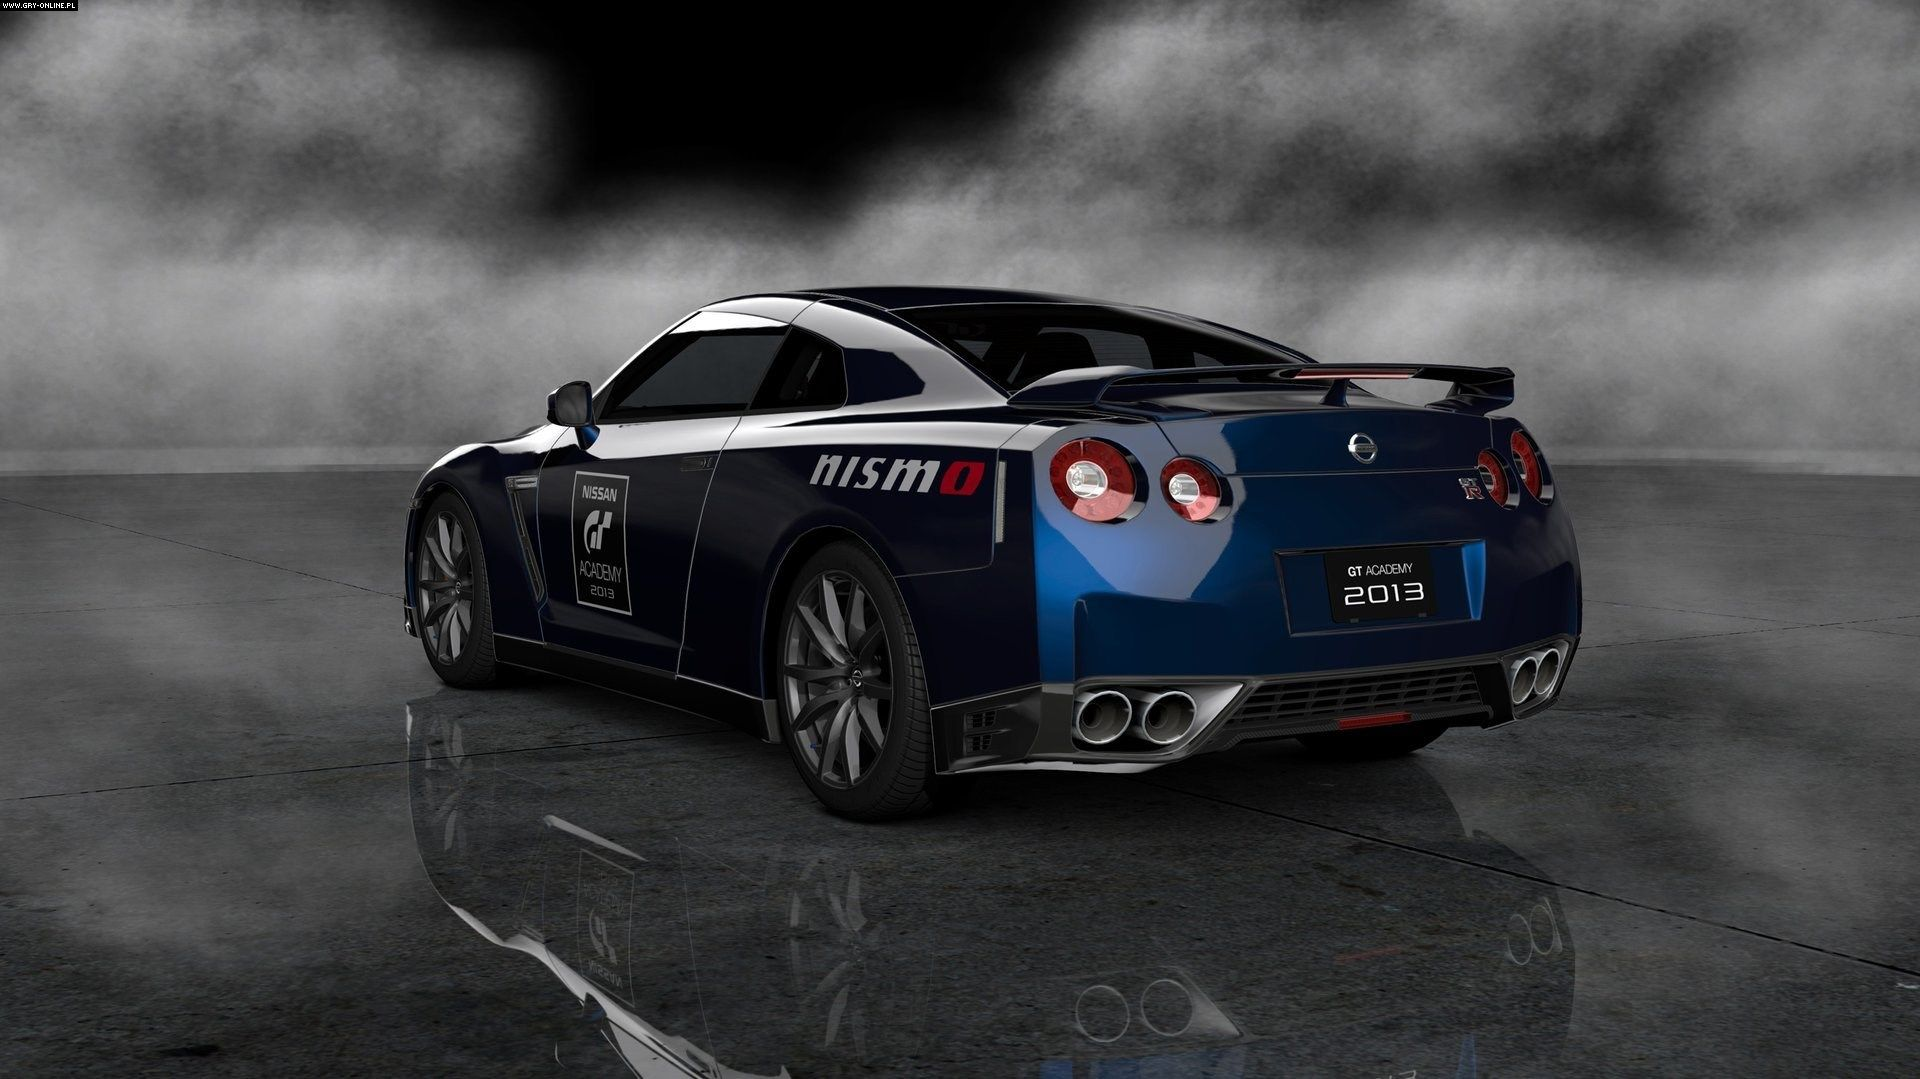 Free Computer Wallpaper For Gran Turismo 6 With Images